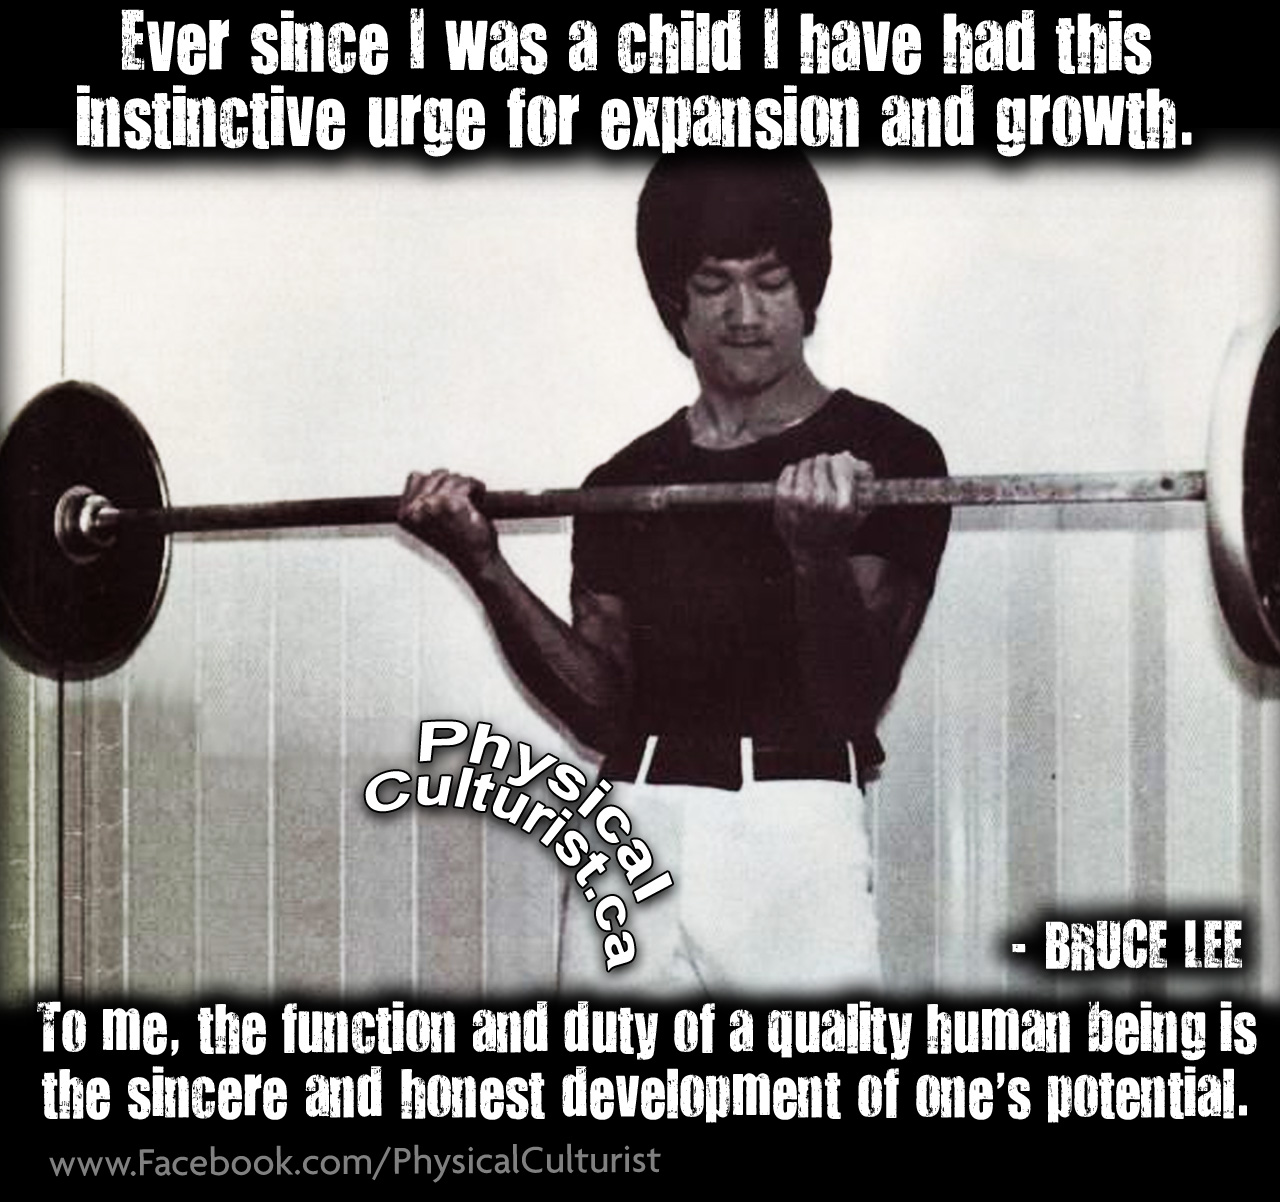 Bruce Lee Quote Ever since I was a child I have had this instinctive urge for expansion and growth. To me, the function and duty of a quality human being is the sincere and honest development of one's potential